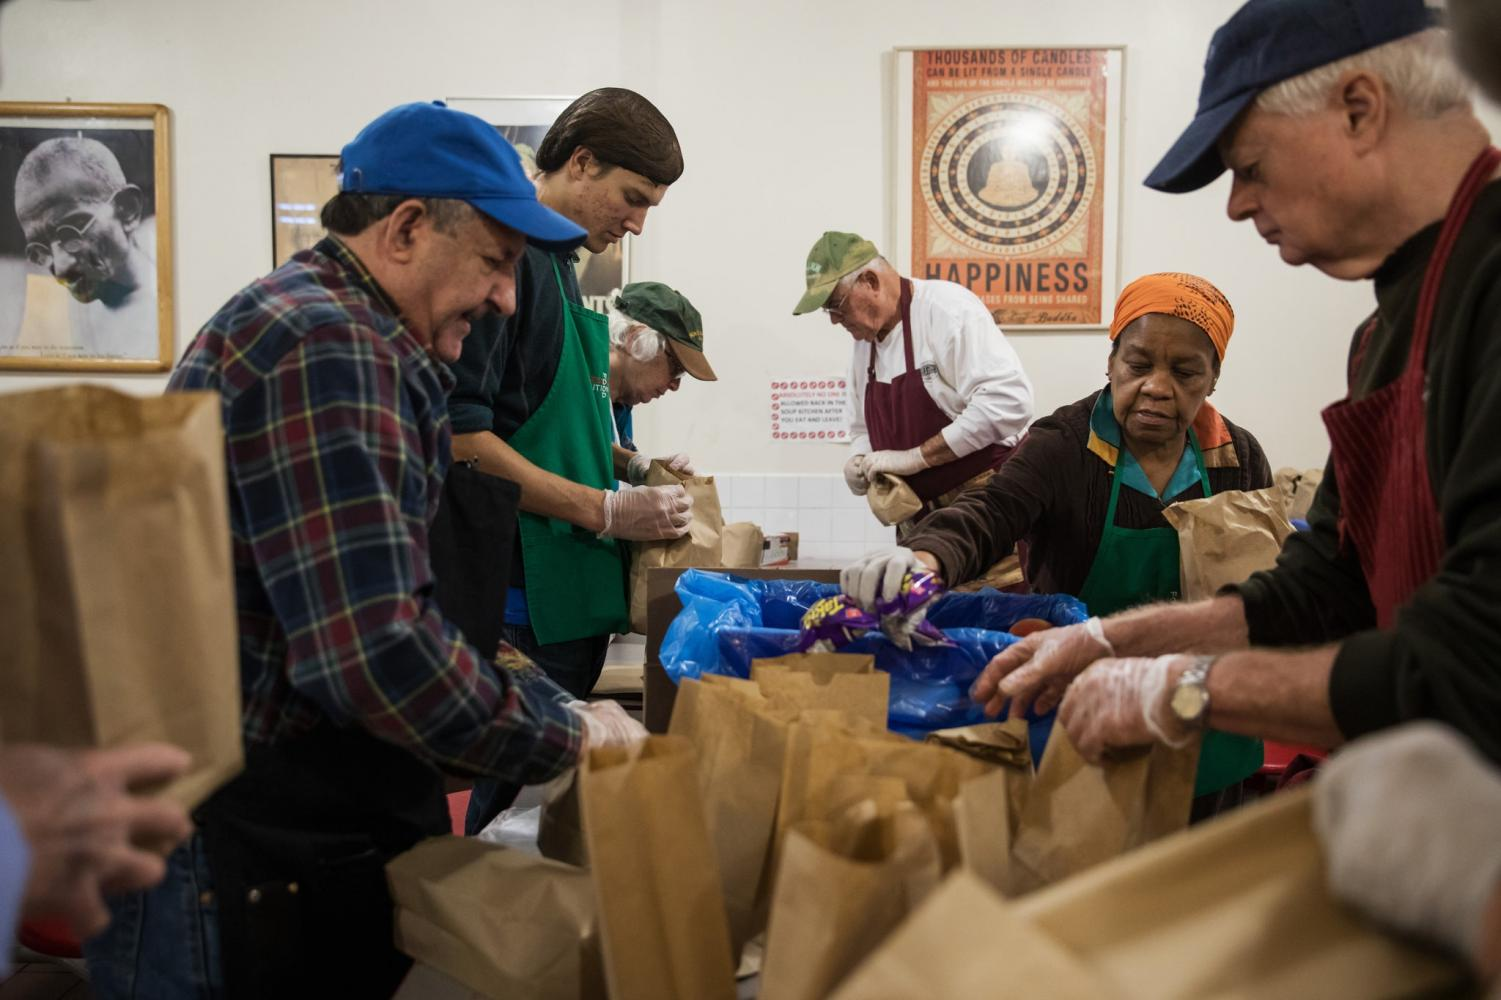 Volunteers preparing meals at a soup kitchen in Brooklyn. (Credit: Todd Heisler/The New York Times)